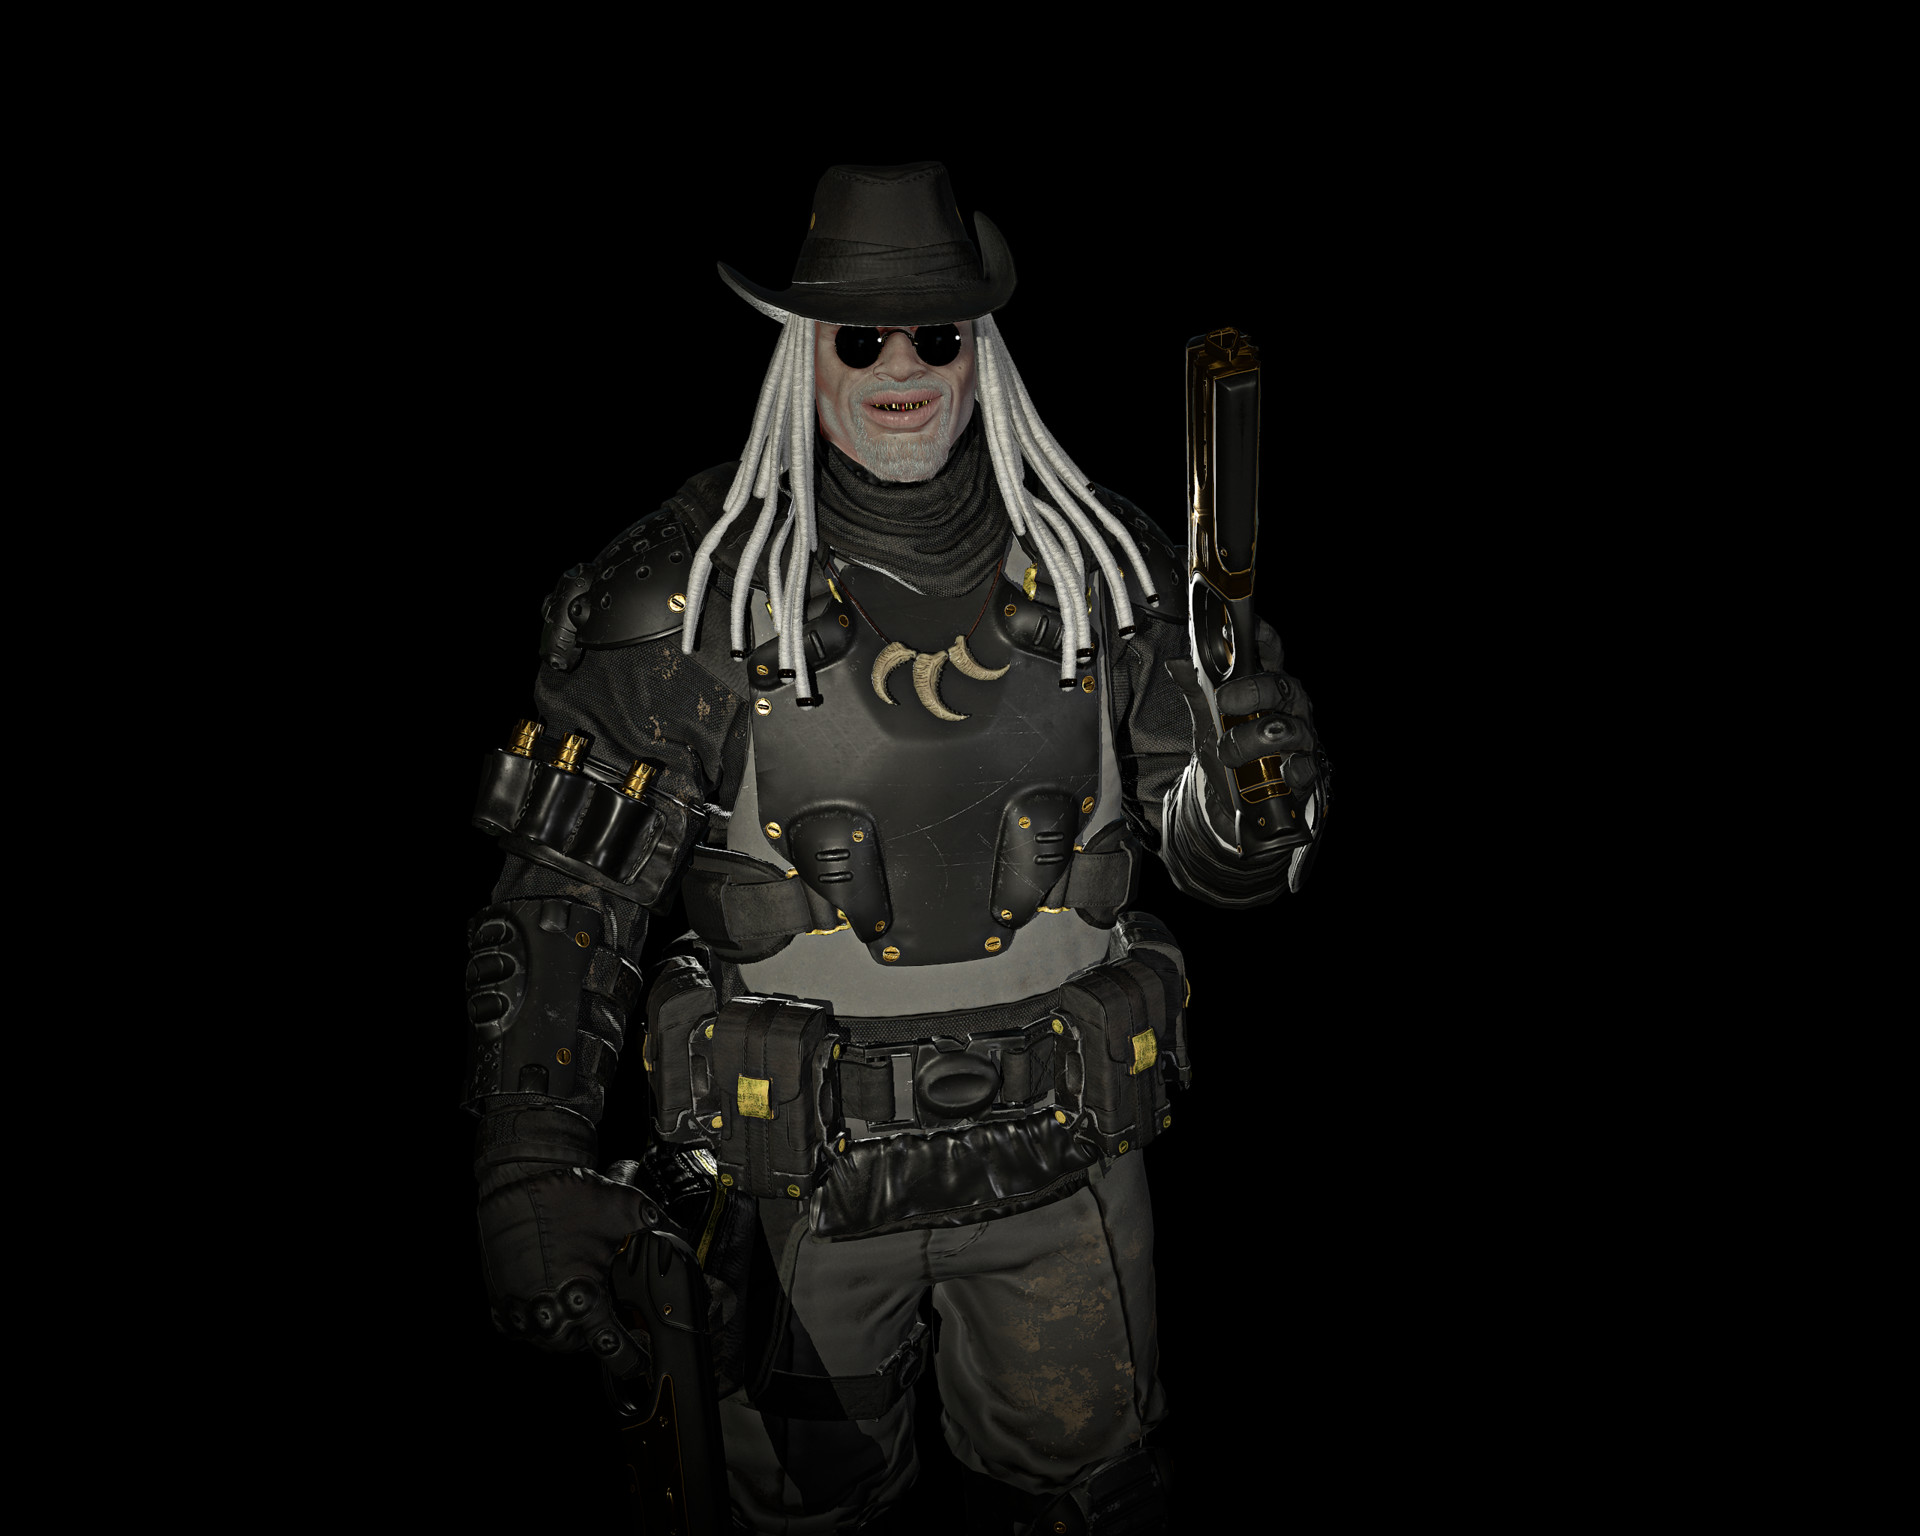 Albino bounty hunter